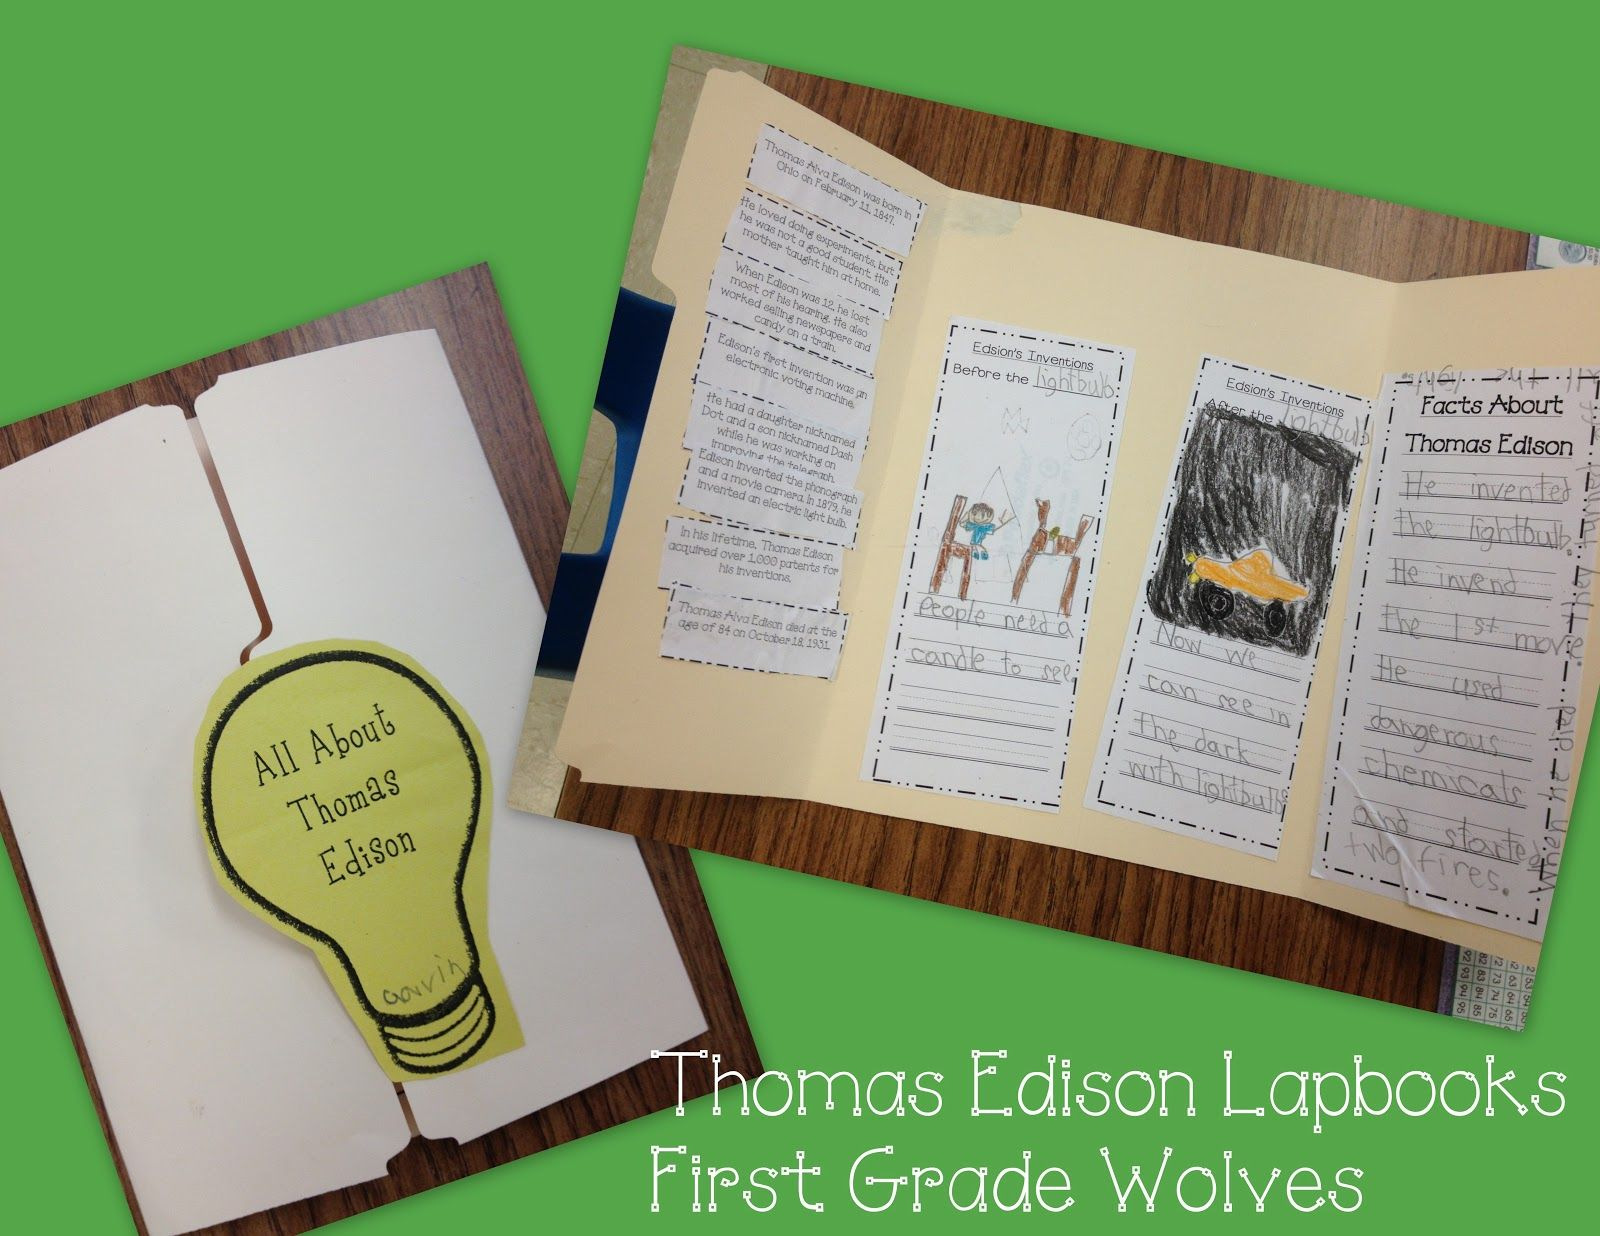 Thomas Edison Lapbook Freebies